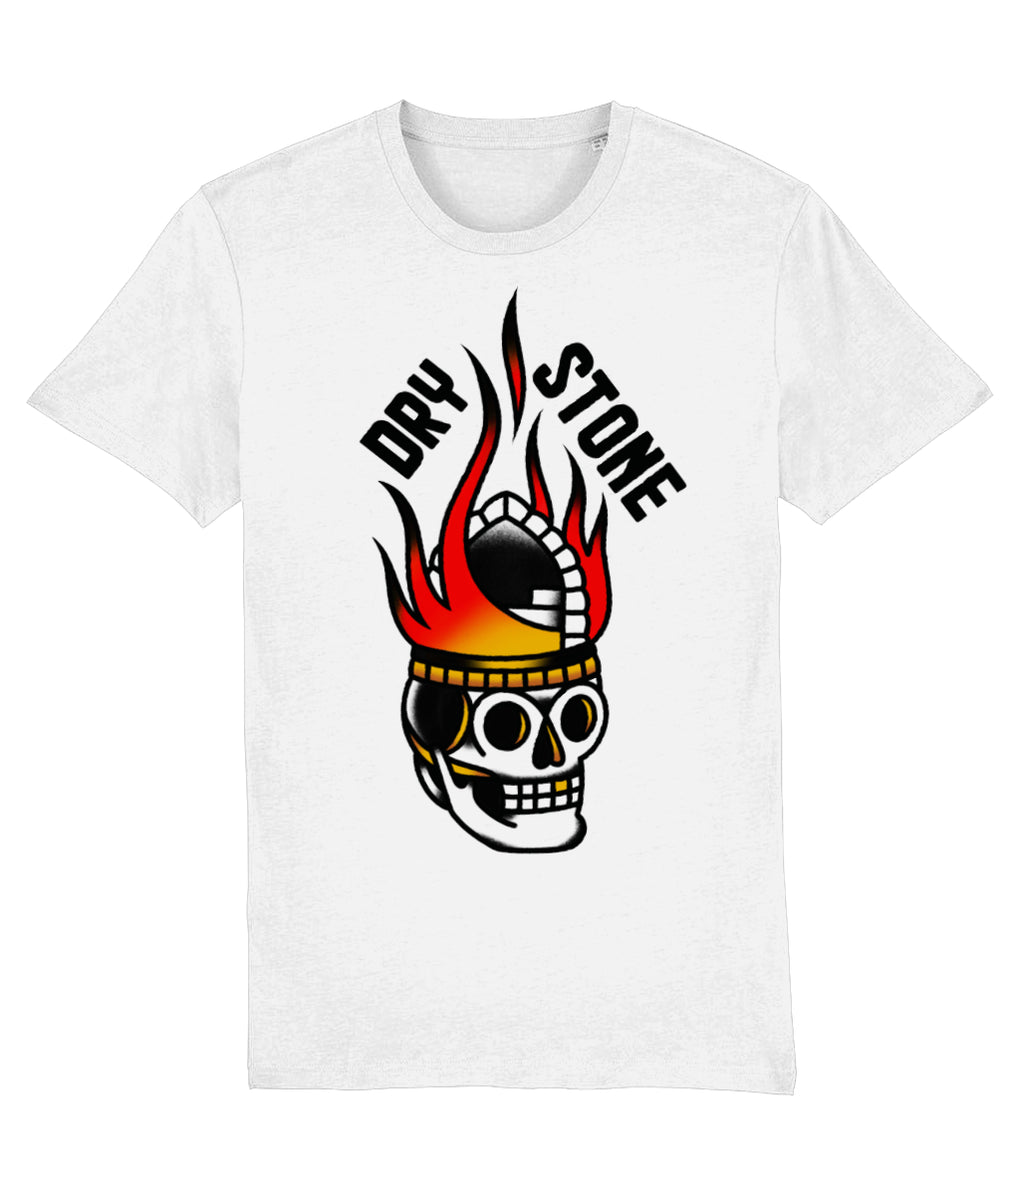 Tattoo T-shirt X-Small Flaming Skull - White Tee